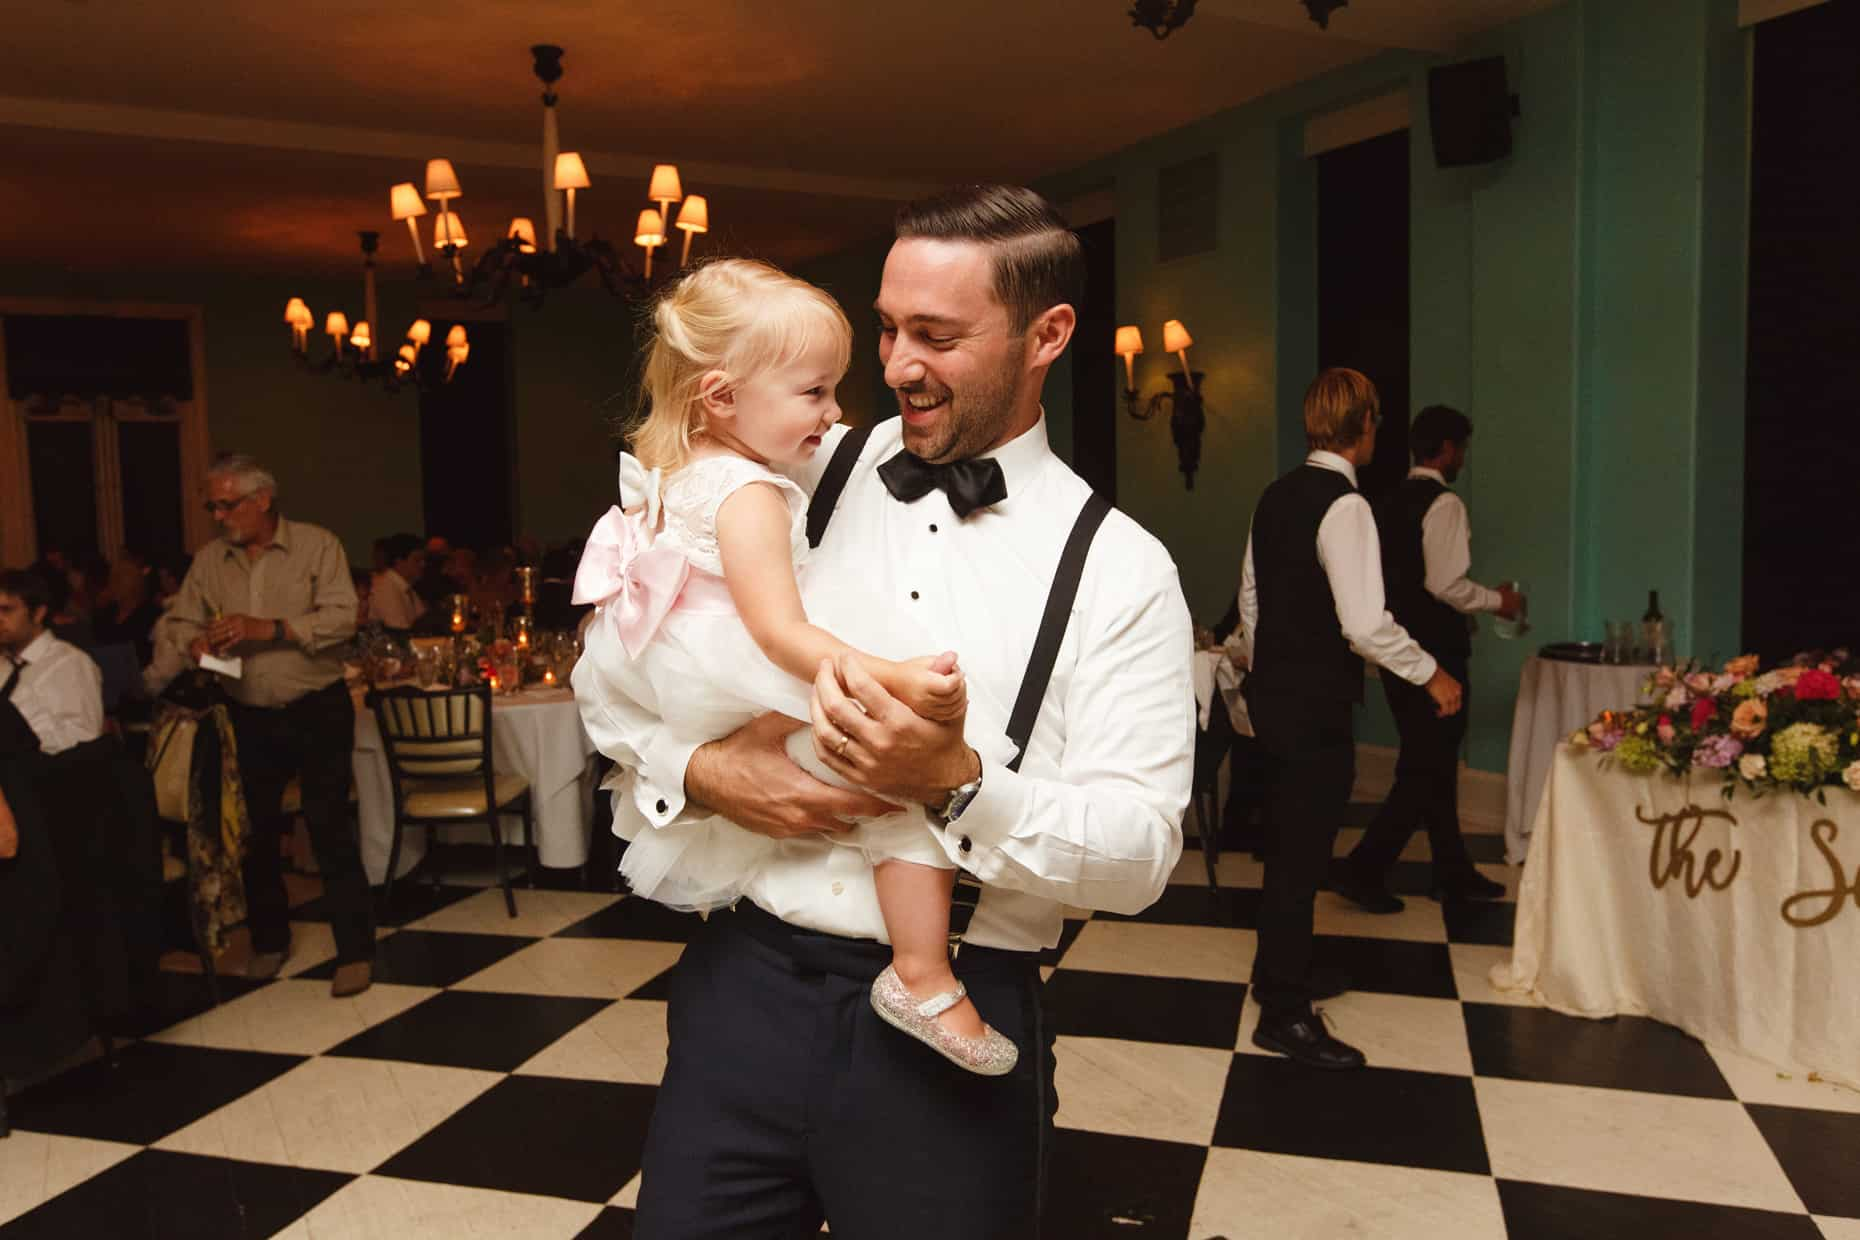 Wedding Pictures New Jersey